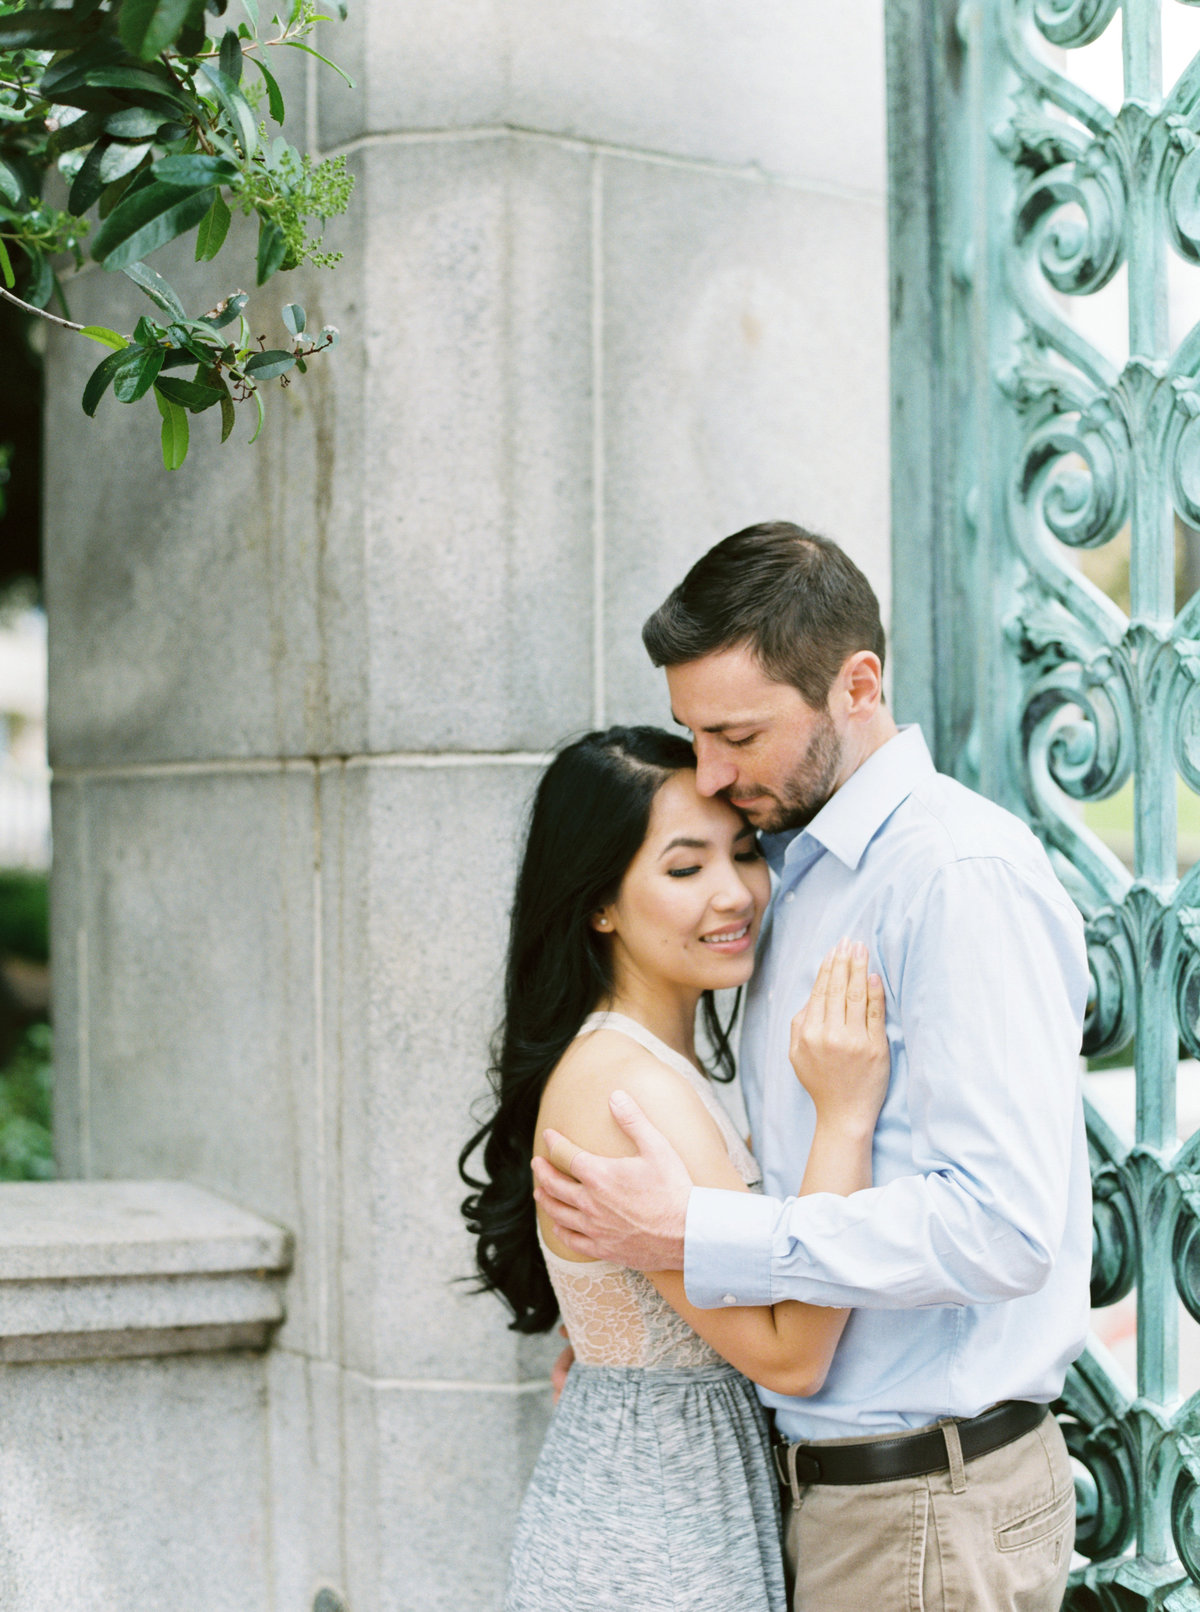 Loan + Scott University of California Berkeley Campus Engagement Session 0078